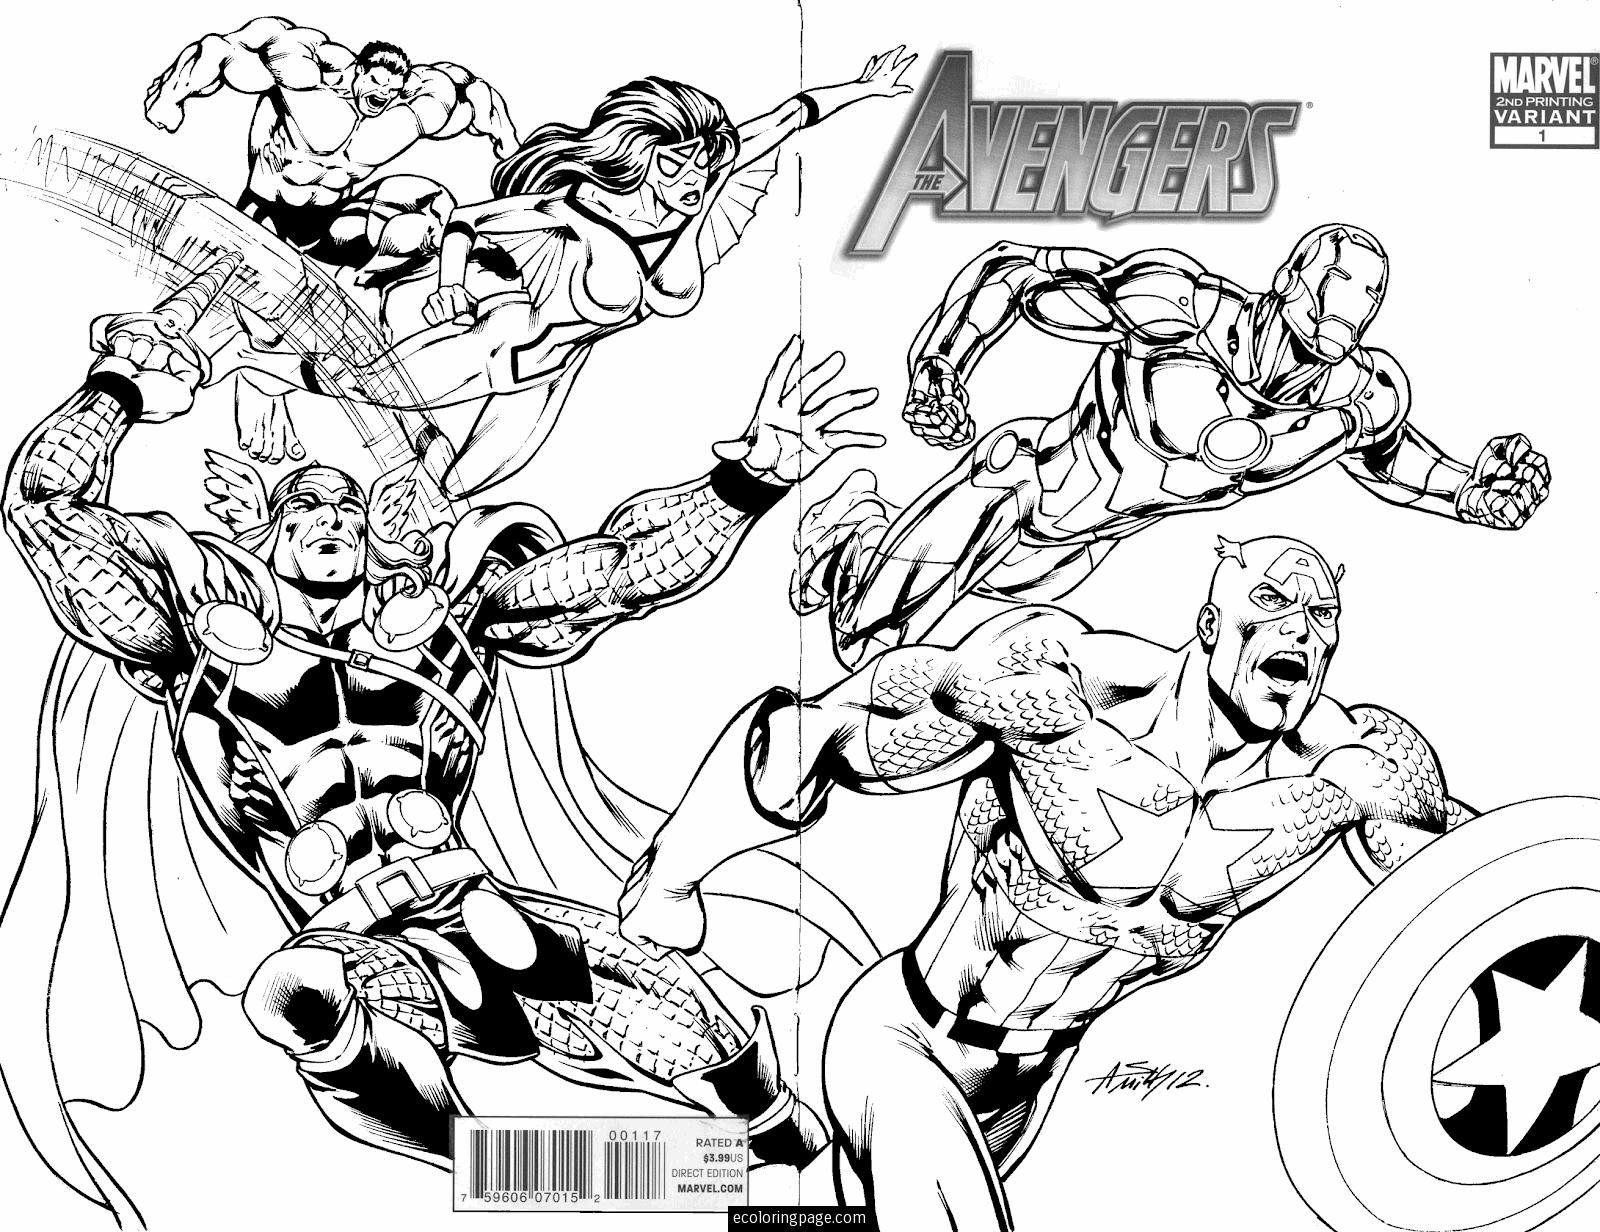 Marvel Lego Superheroes Colouring Pages 2 Marvel Coloring Pages Prints And Colors Superhero Coloring Pages Avengers Coloring Avengers Coloring Pages